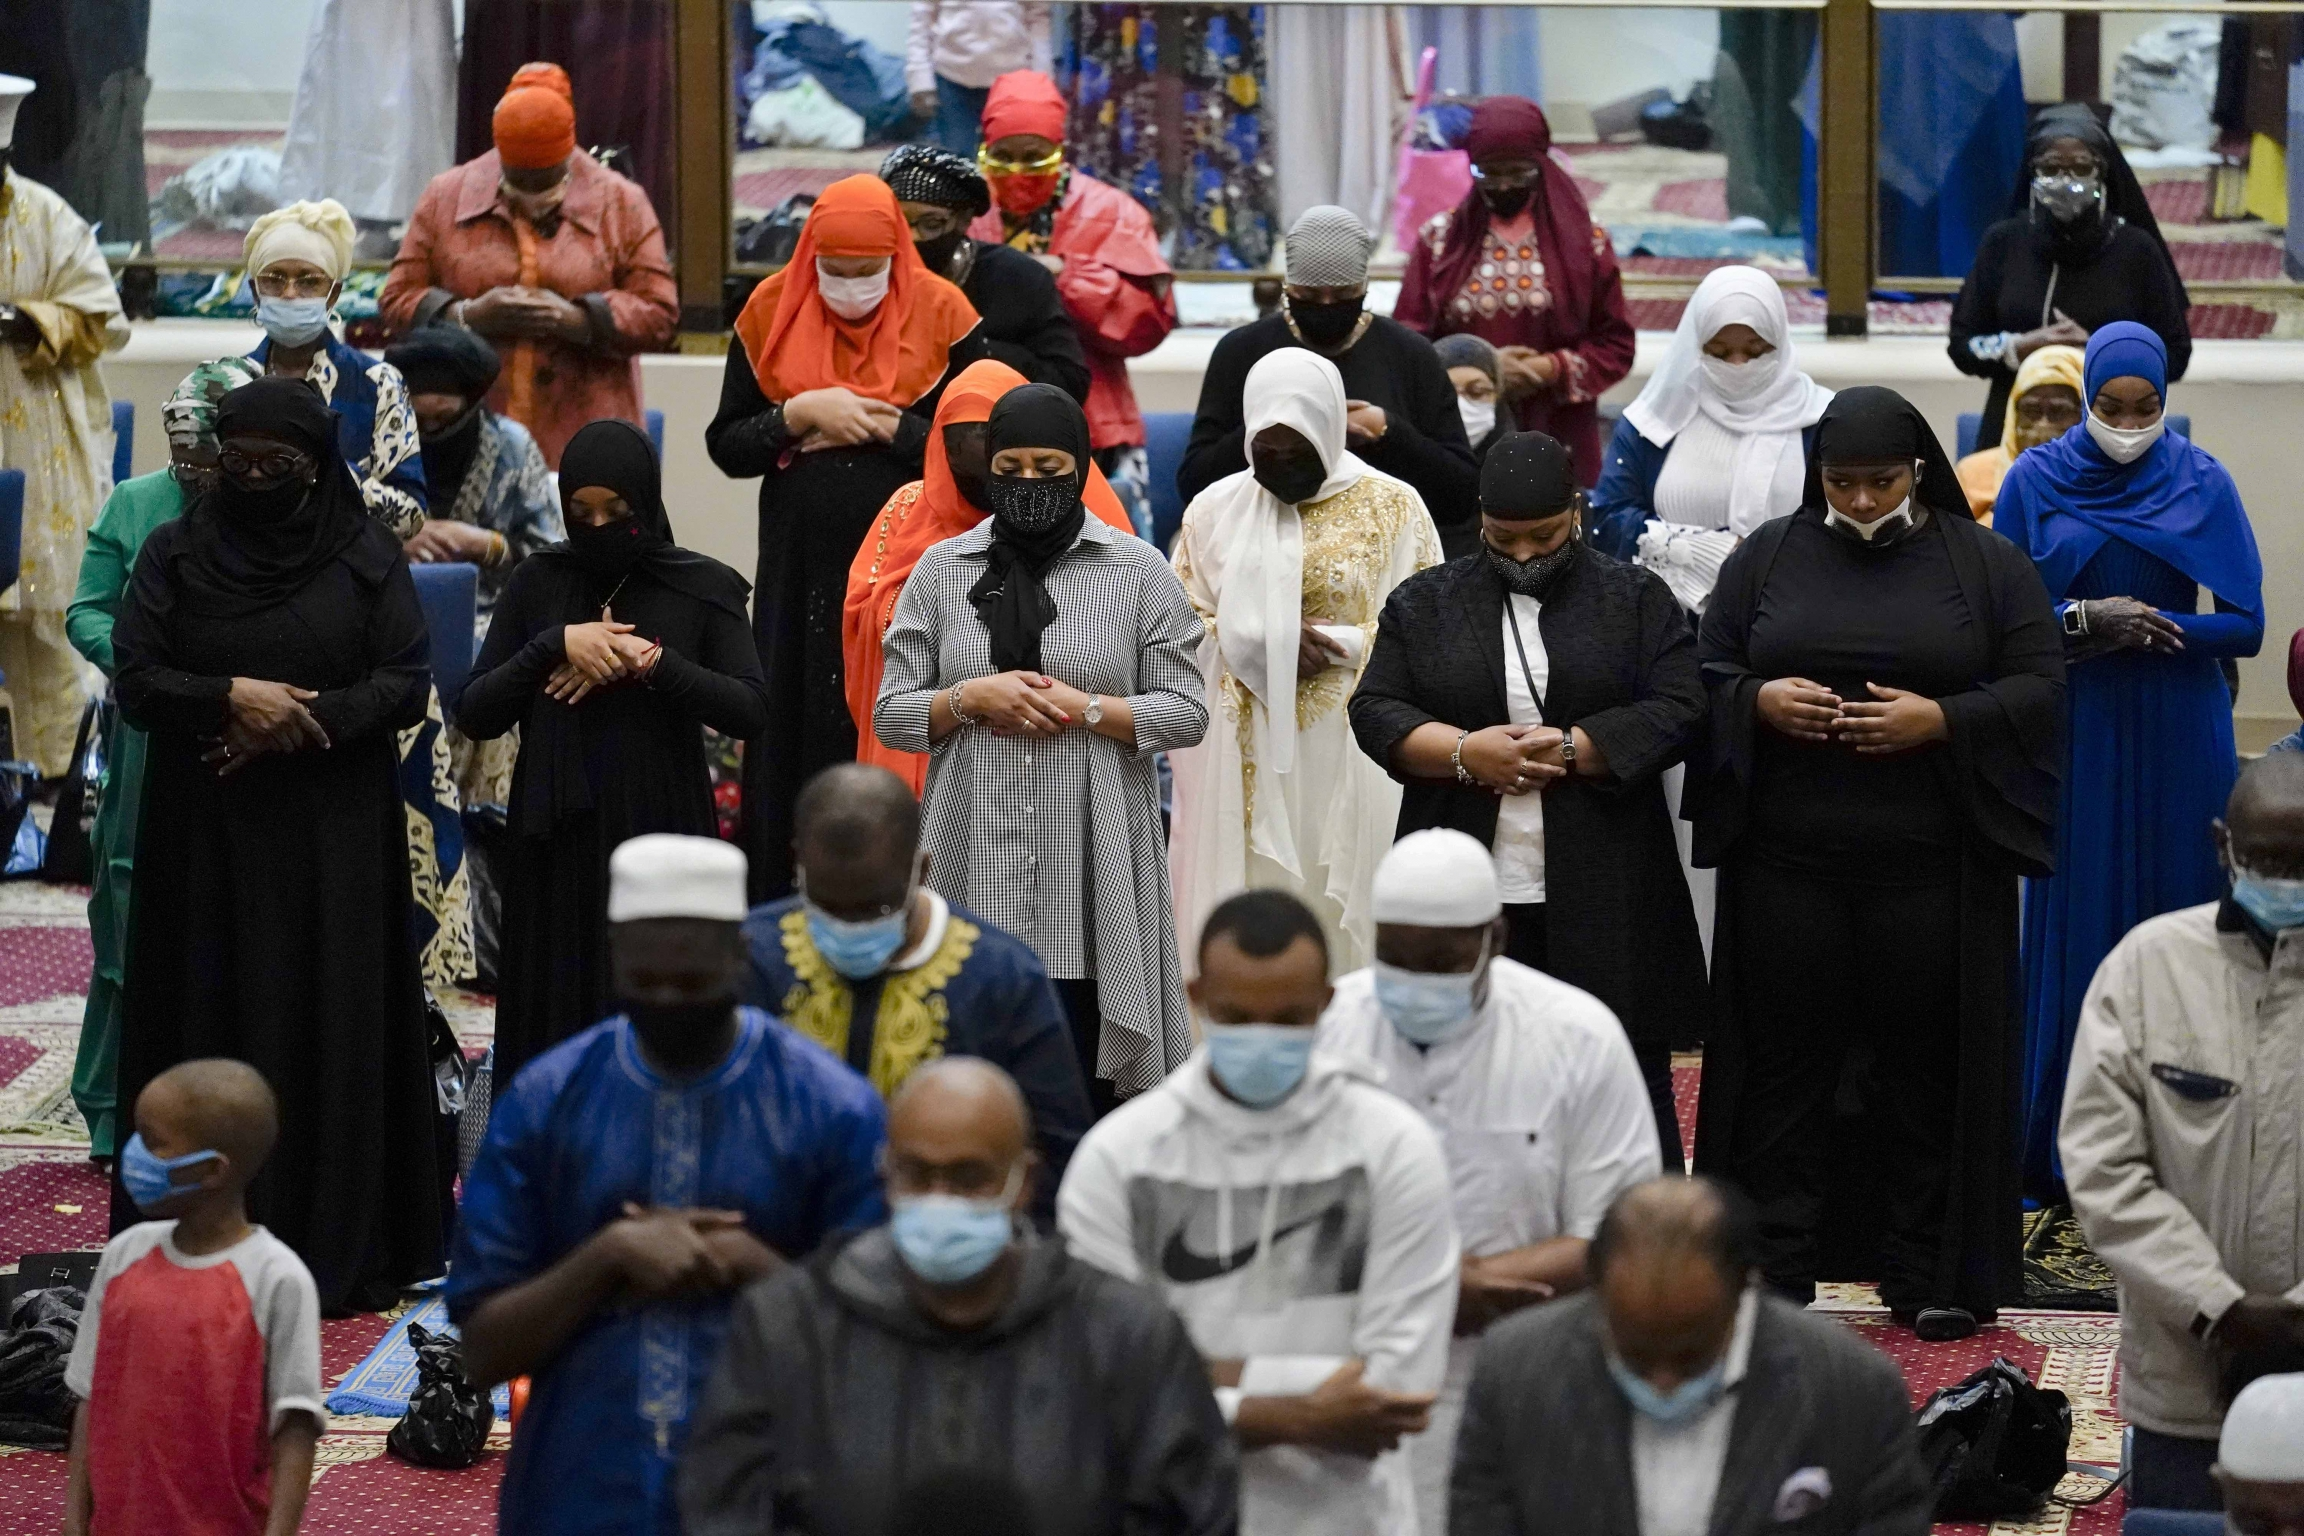 Worshippers perform an Eid al-Fitr prayer at the Masjidullah Mosque in Philadelphia, on Thursday, May 13, 2021